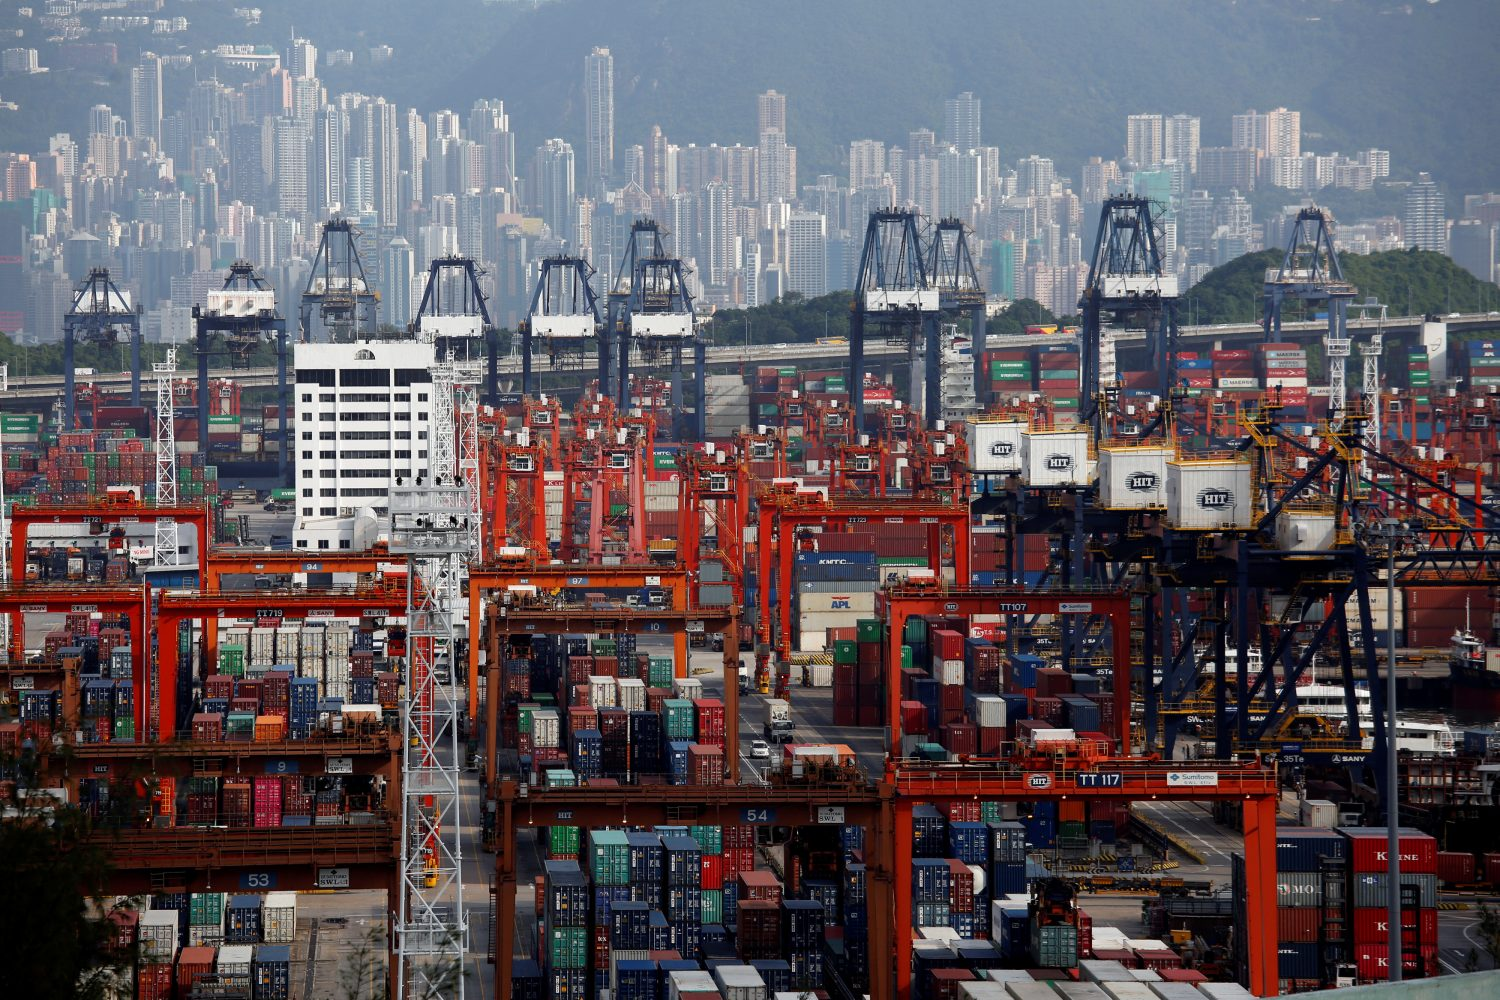 A general view of Kwai Tsing Container Terminals for transporting shipping containers in Hong Kong, China July 25, 2018. REUTERS/Bobby Yip